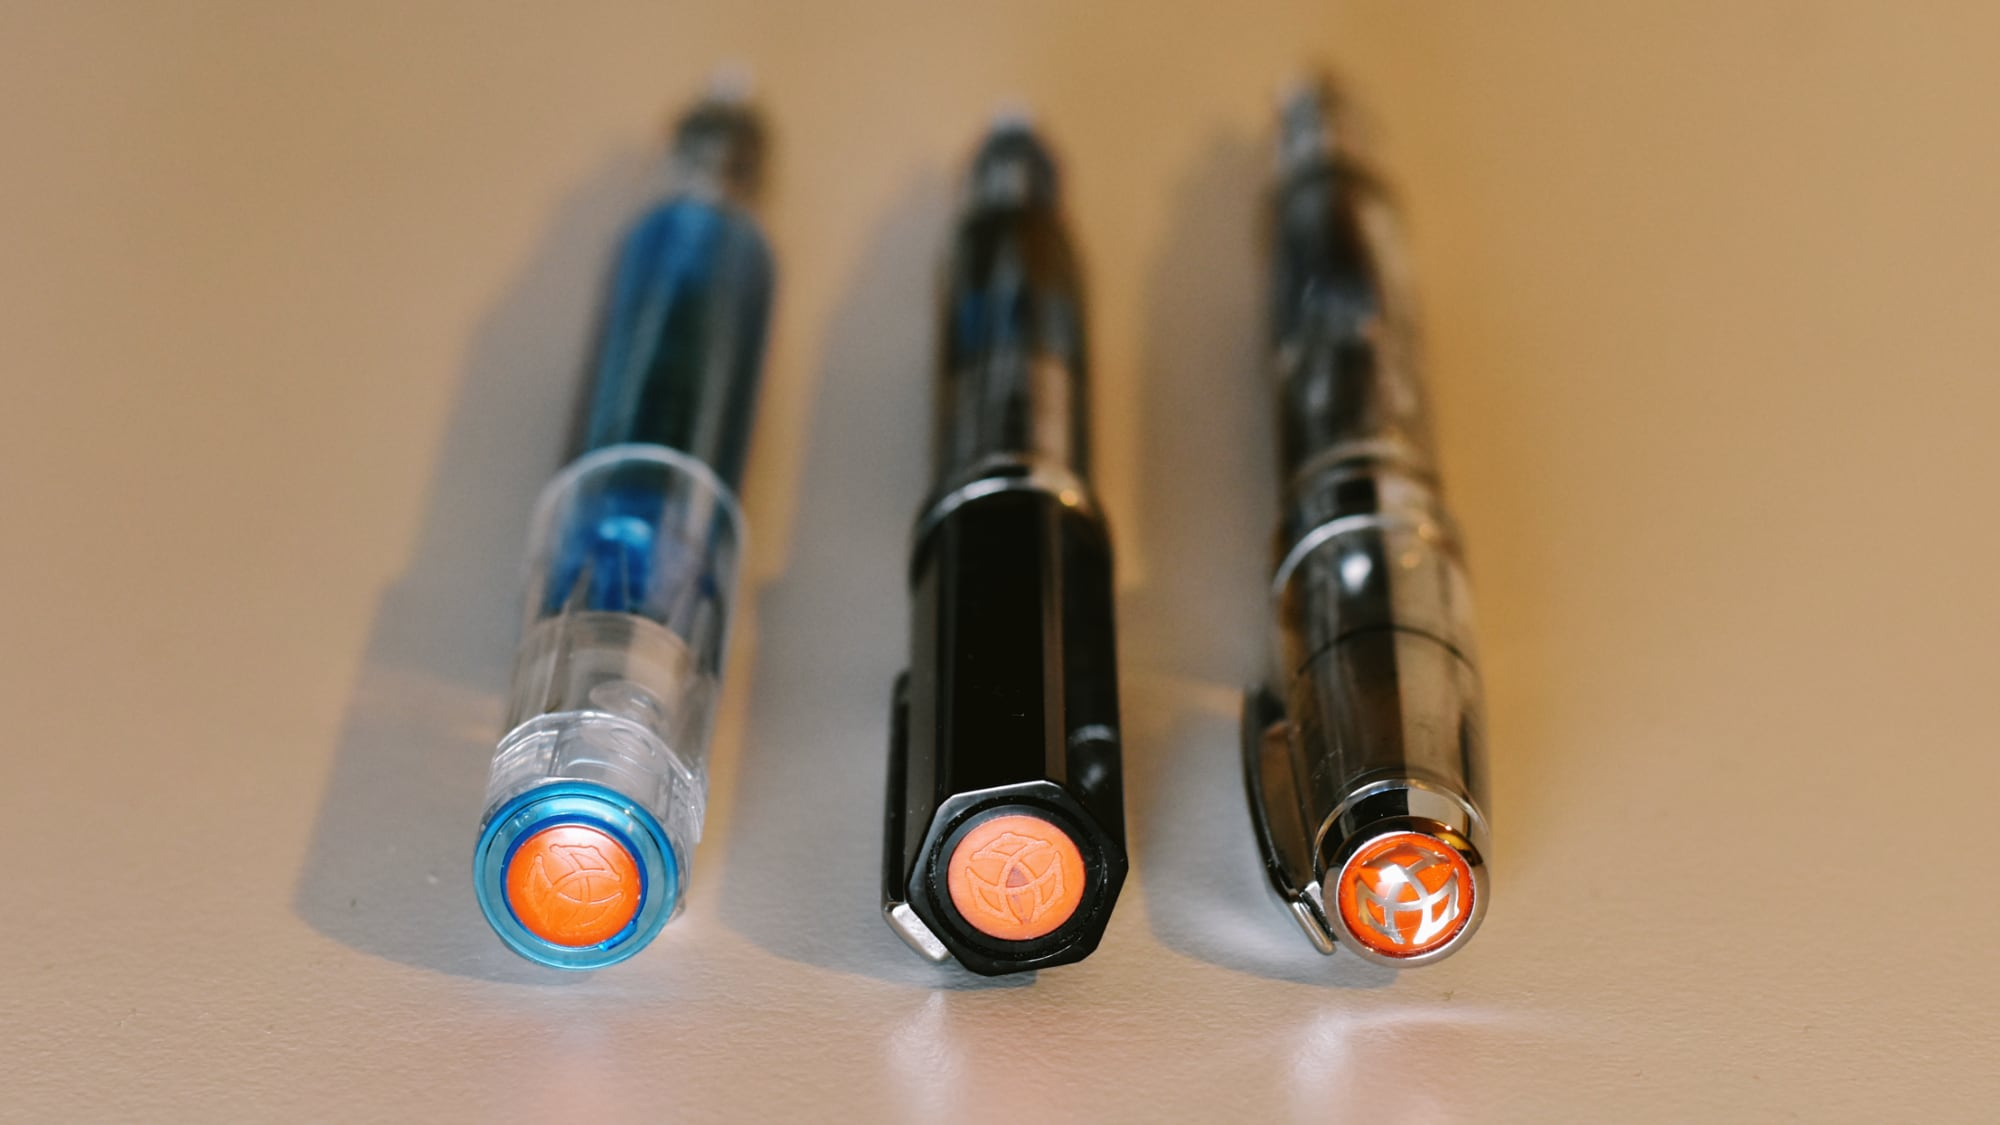 Left-to-right: The TWSBI Go, Eco, Diamond 580